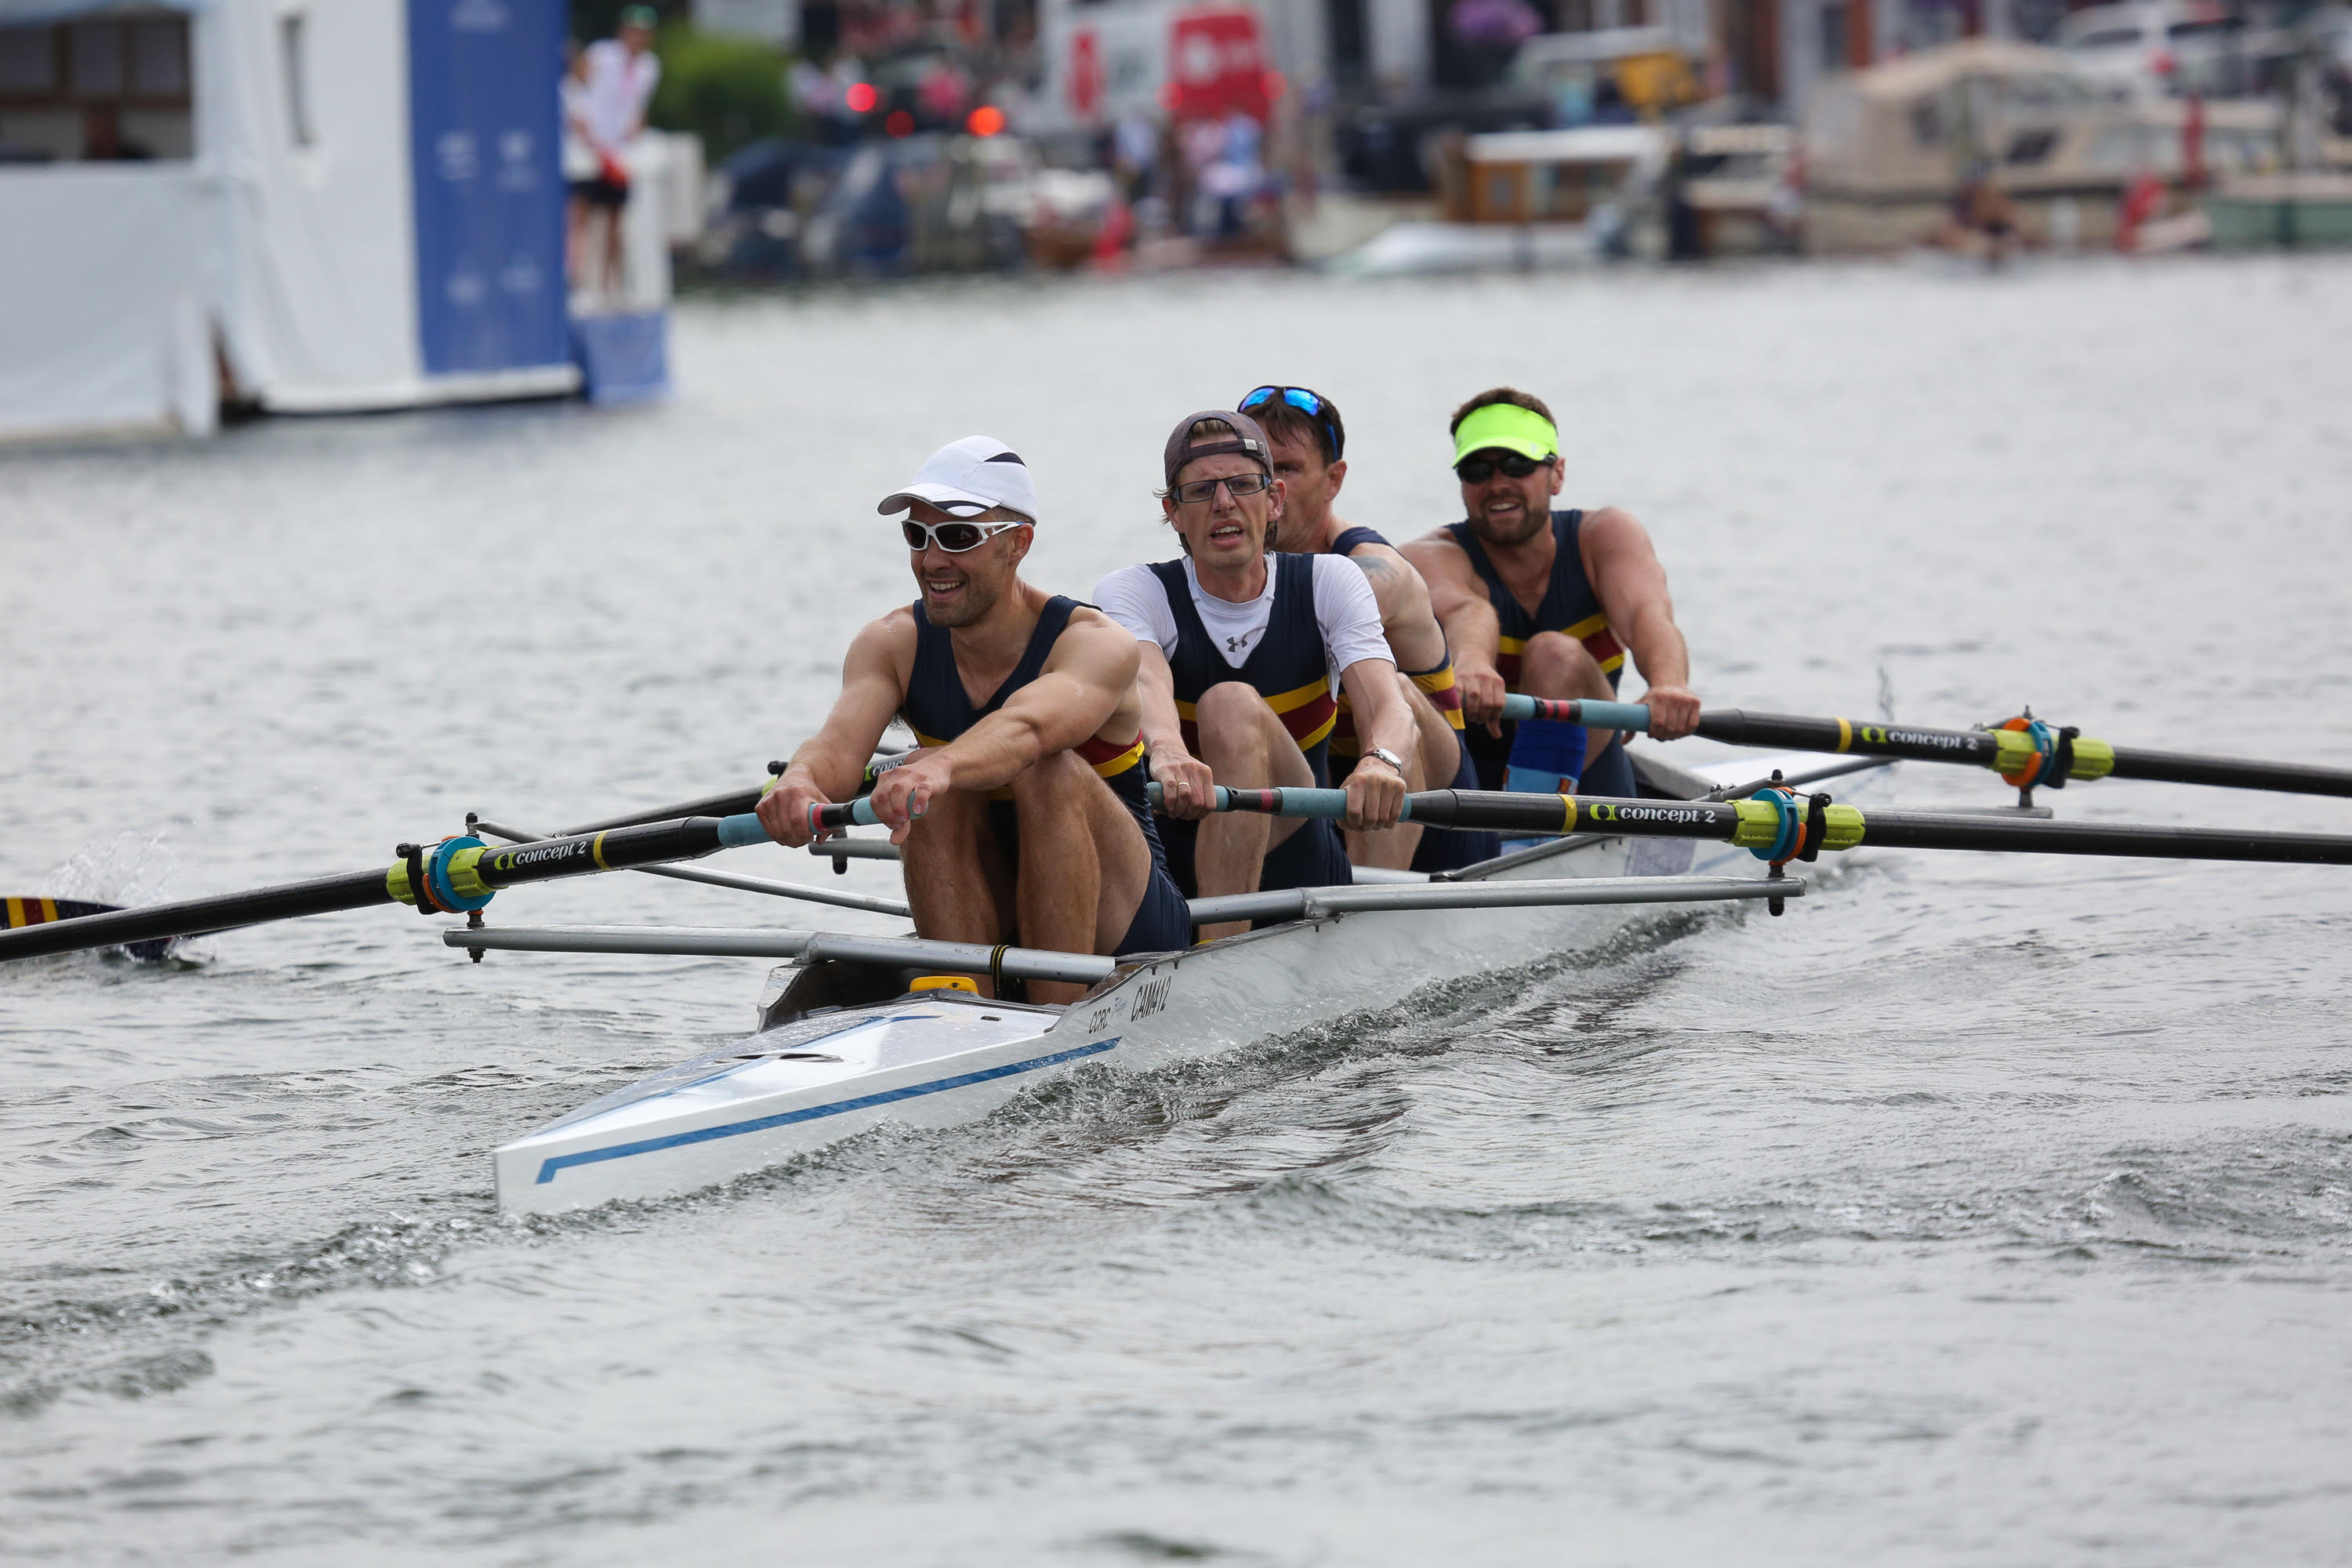 CCRC Men competing in the Wyfolds at HRR